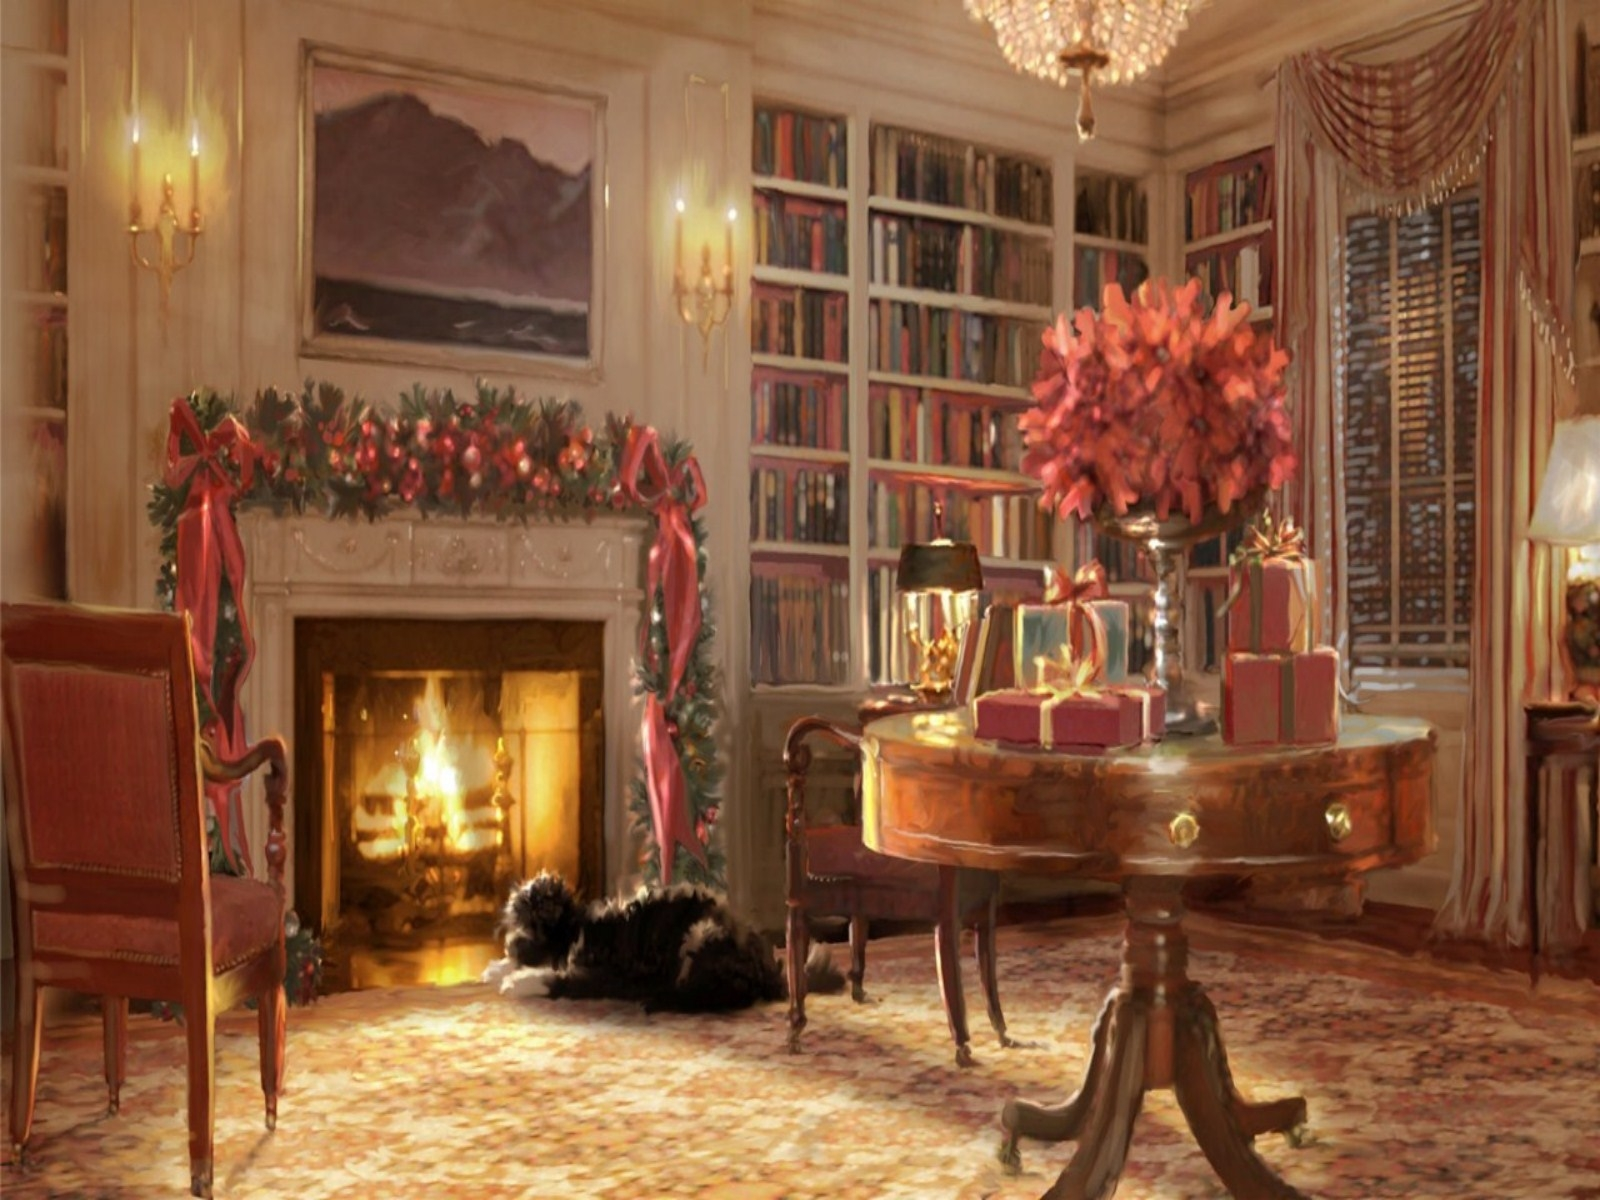 Christmas fireplace fire holiday festive decorations art painting f ...